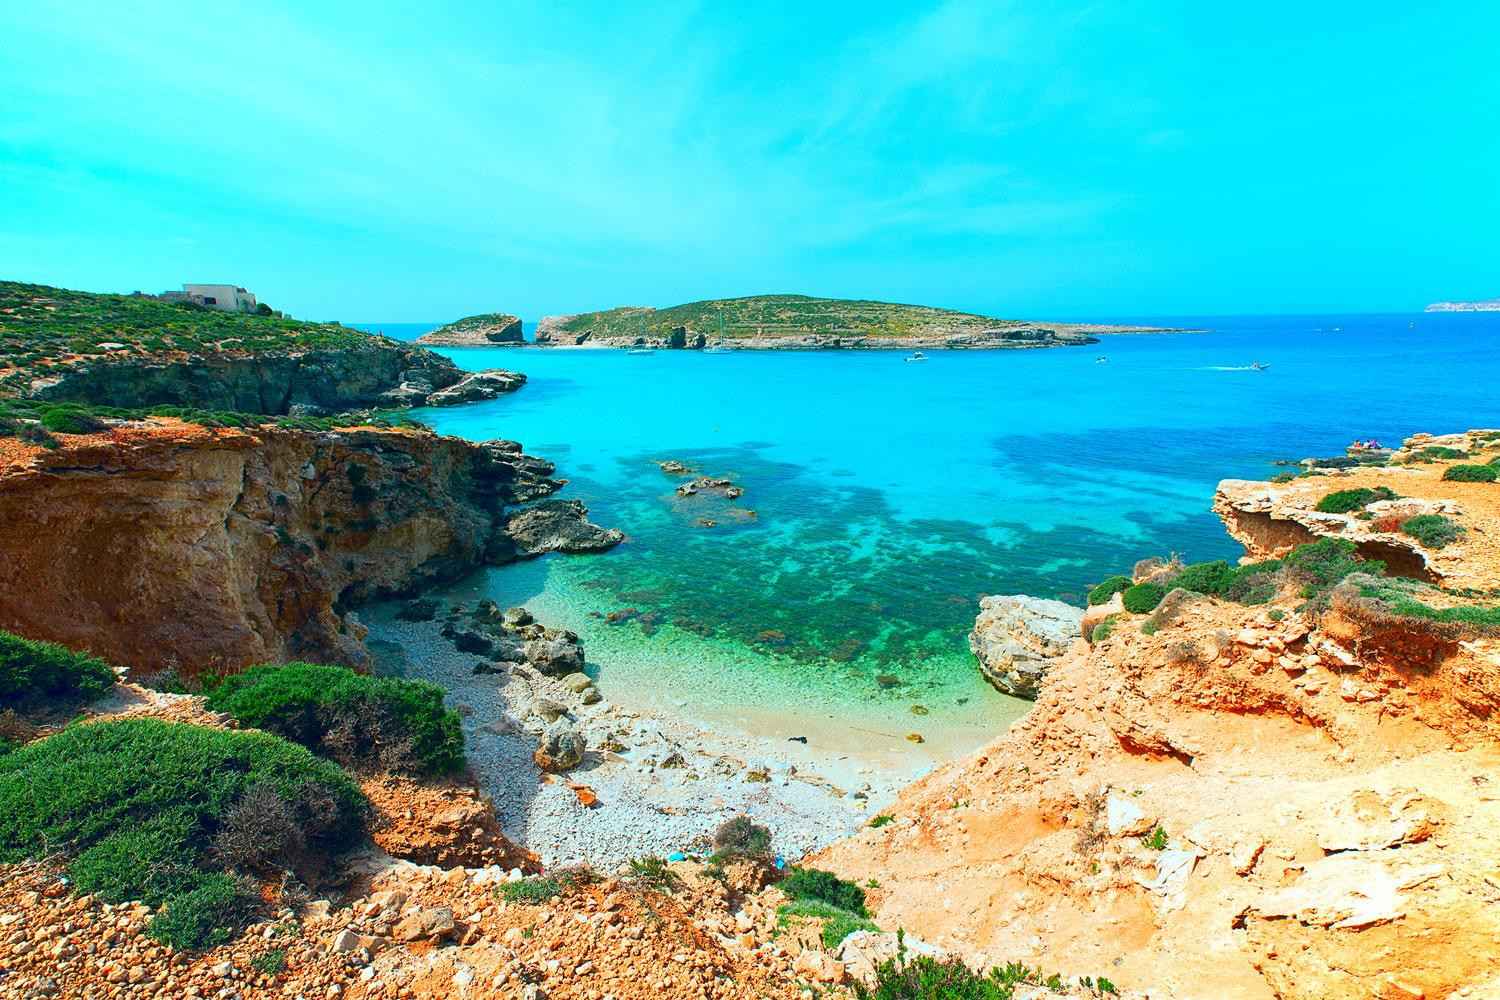 Turquoise seas off the Island of Comino